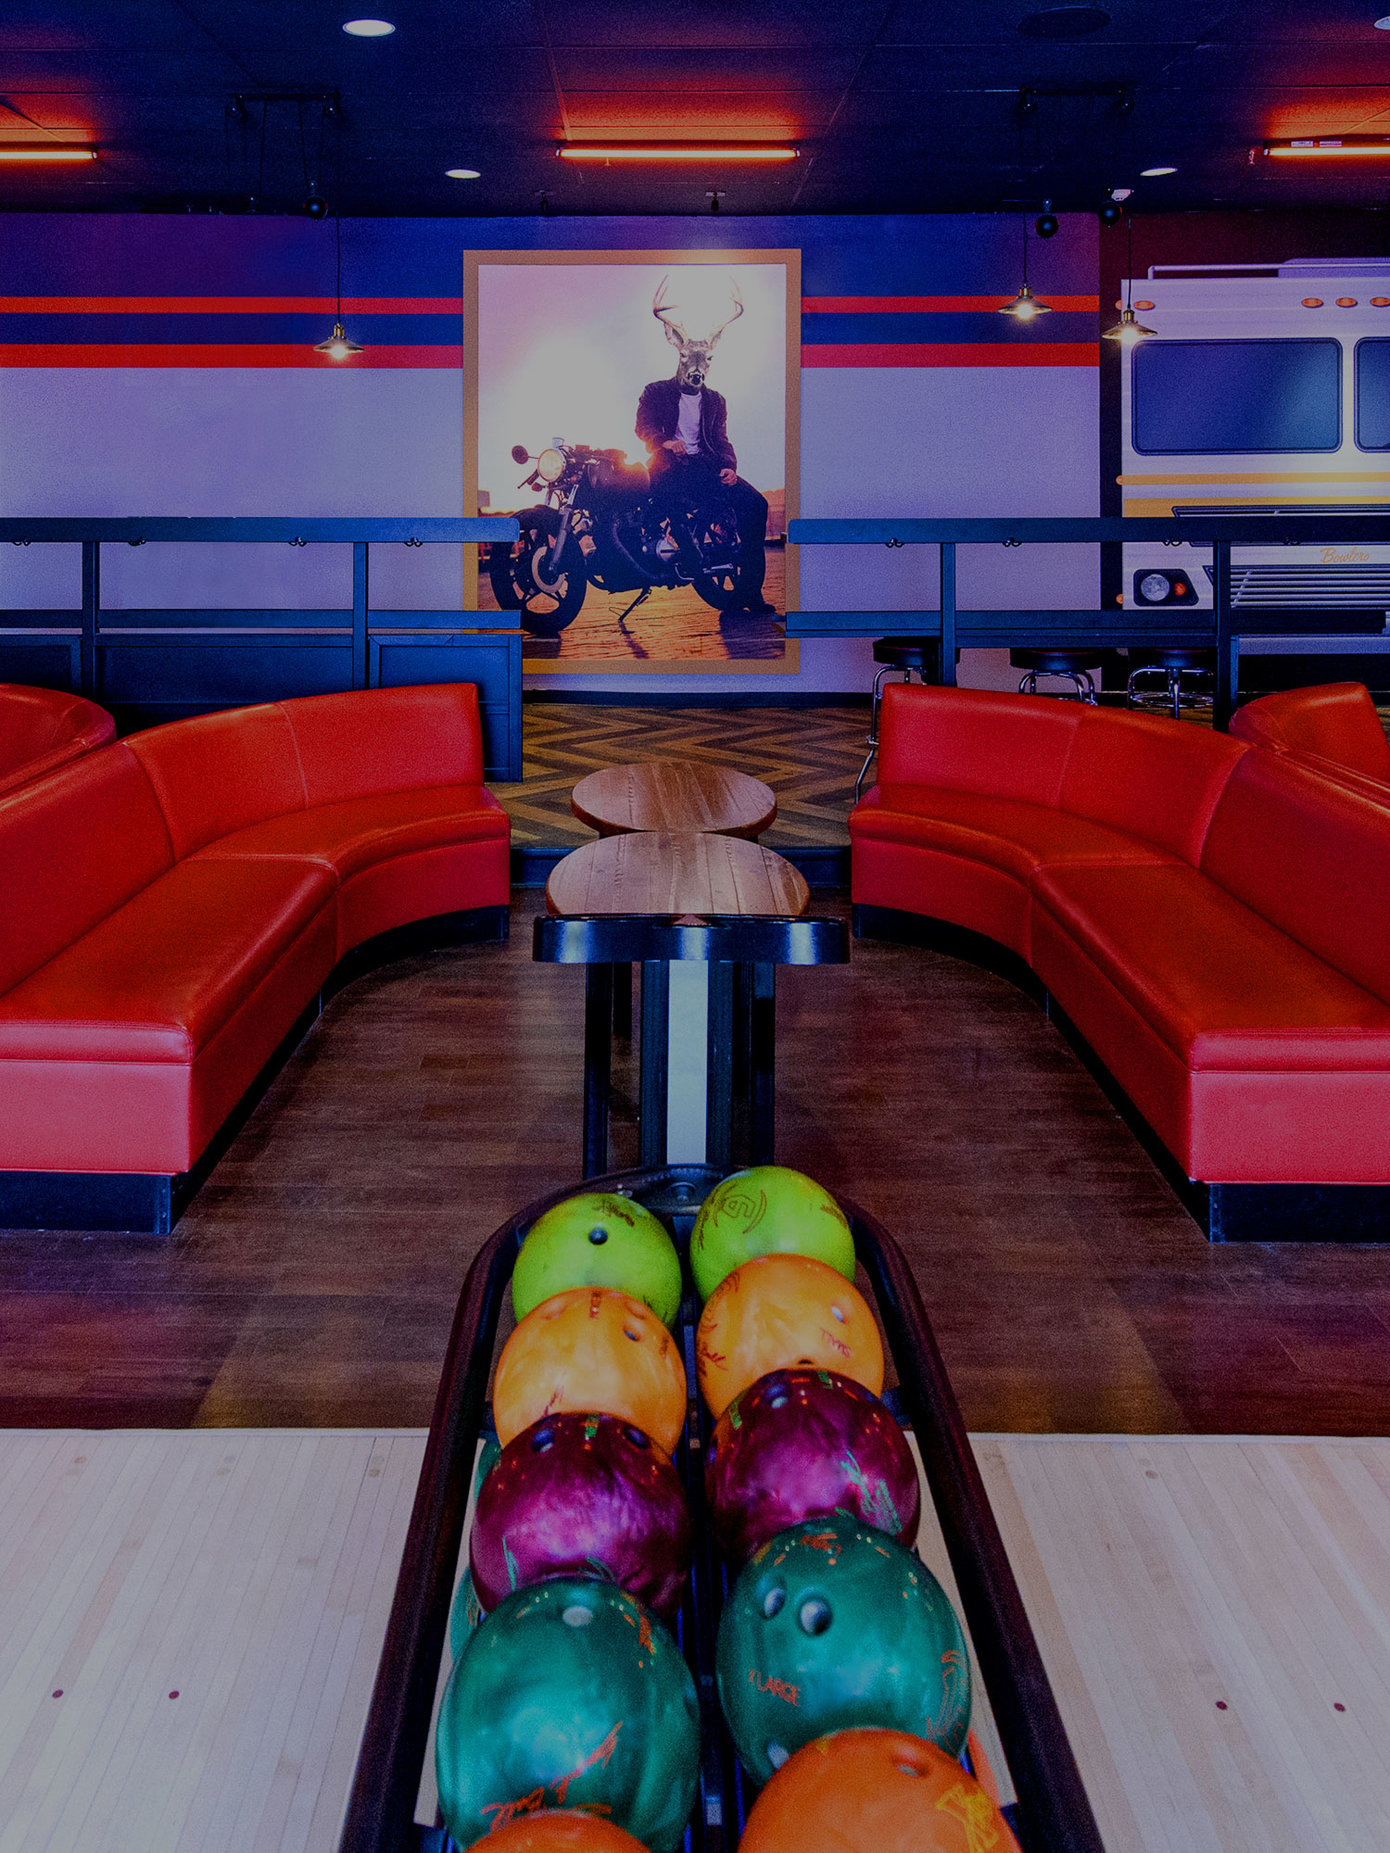 Red plush couches and ball return